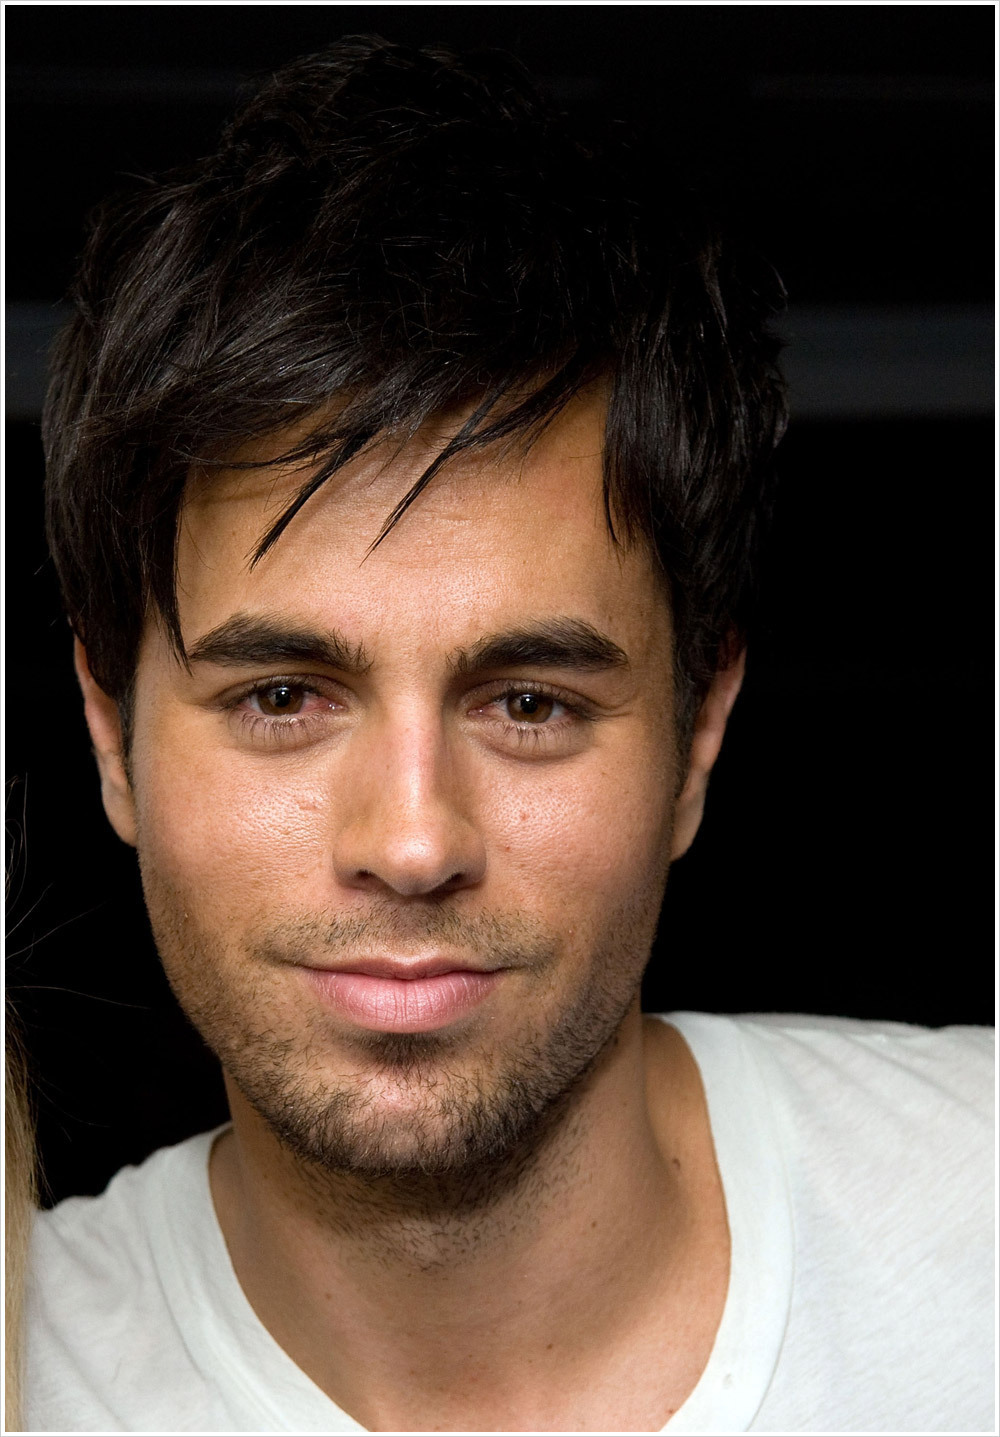 http://images2.fanpop.com/images/photos/2900000/enrique-enrique-iglesias-2961402-1000-1437.jpg